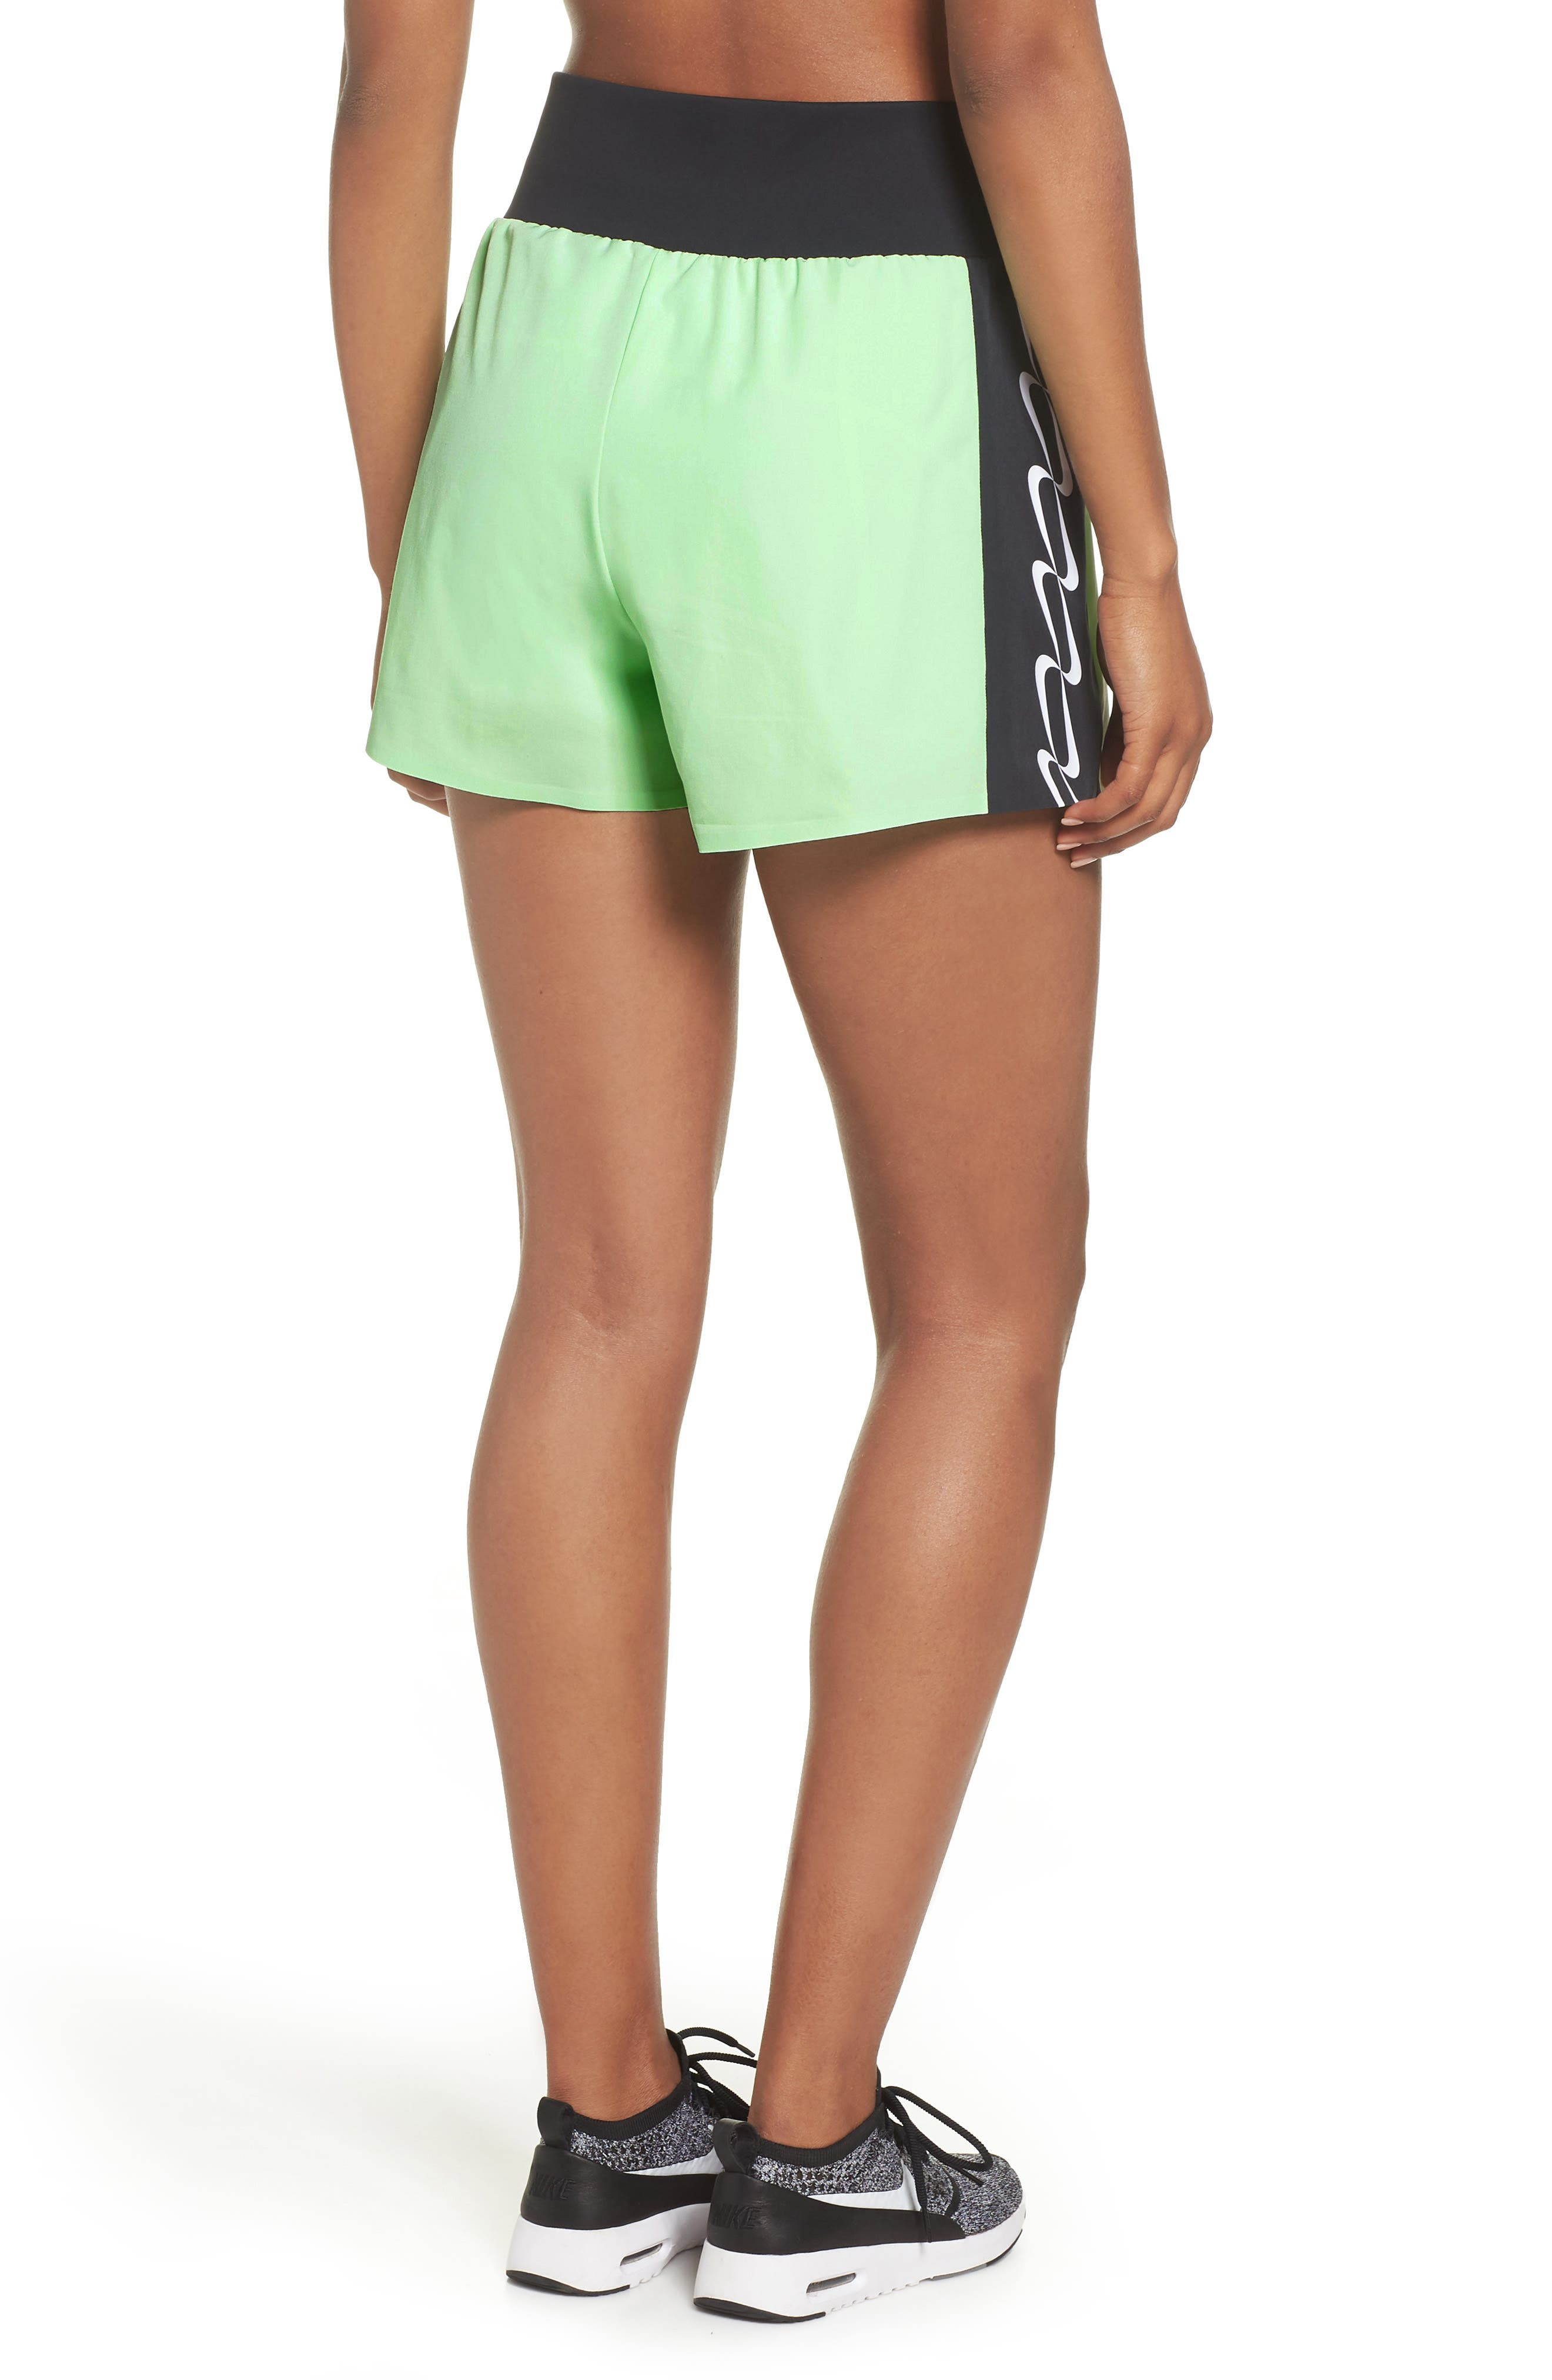 NRG Women's Dri-FIT Running Shorts,                             Alternate thumbnail 2, color,                             VAPOR GREEN/ BLACK/ WHITE